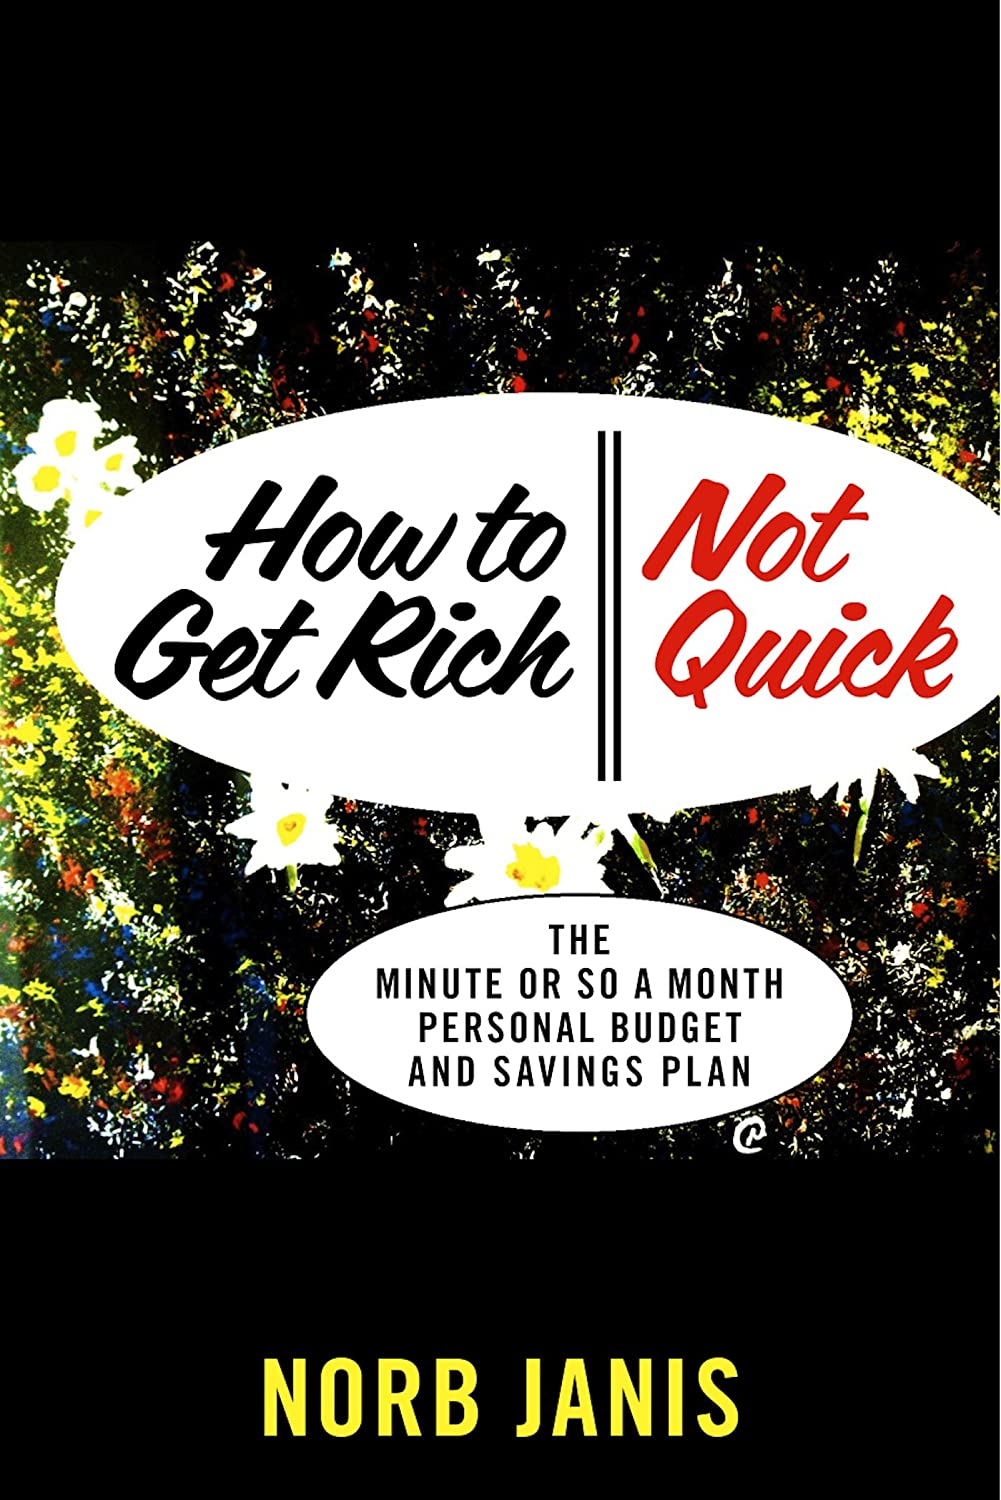 How to Get Rich, Not Quick